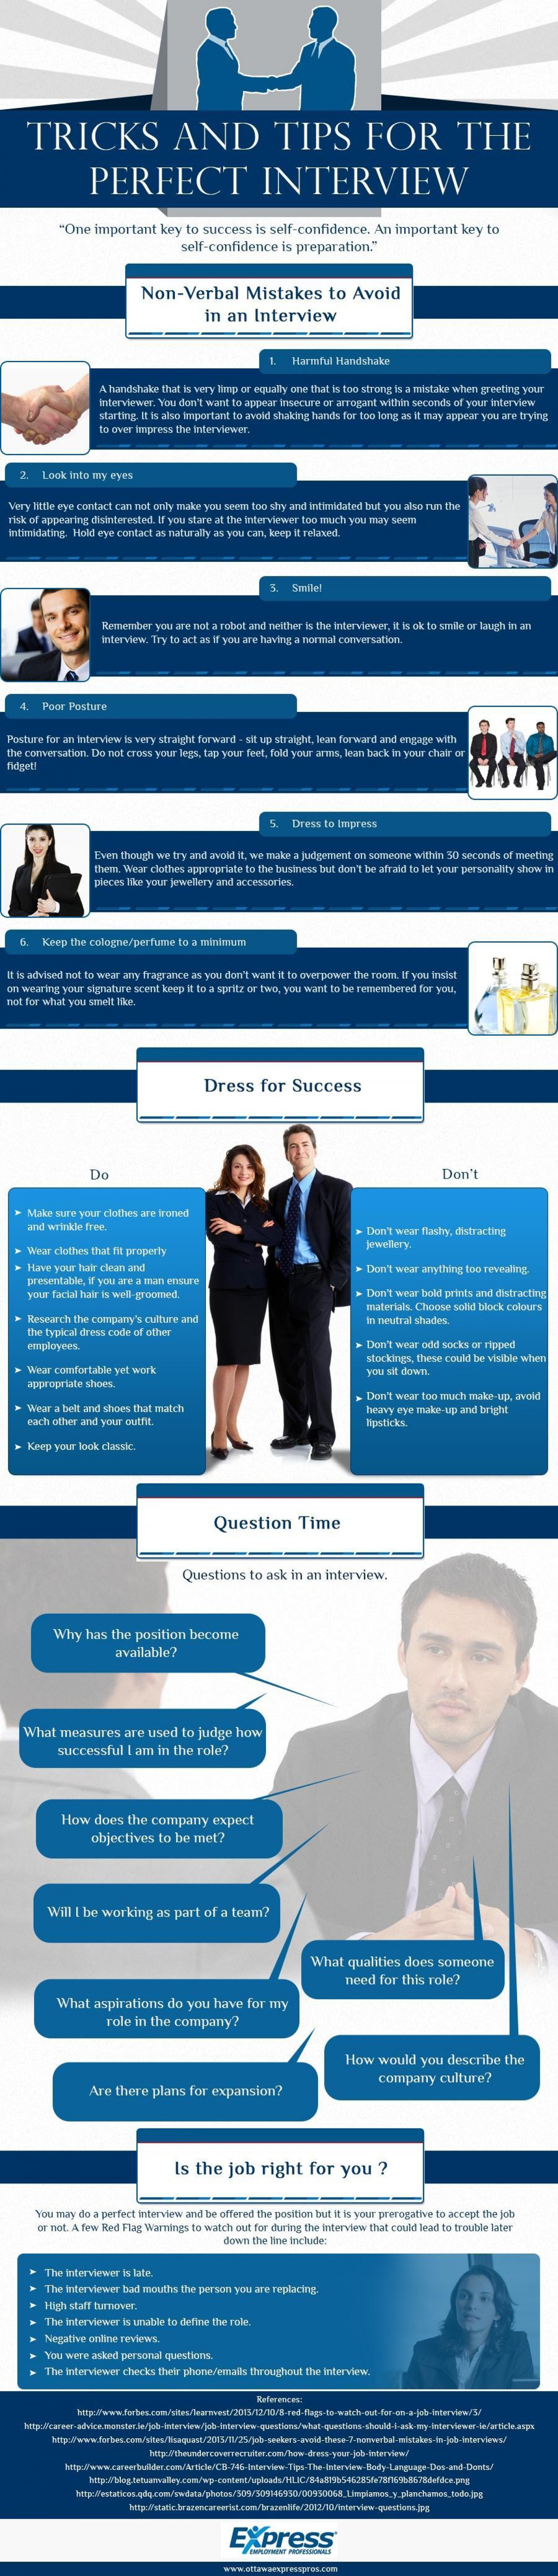 tips for successful interview